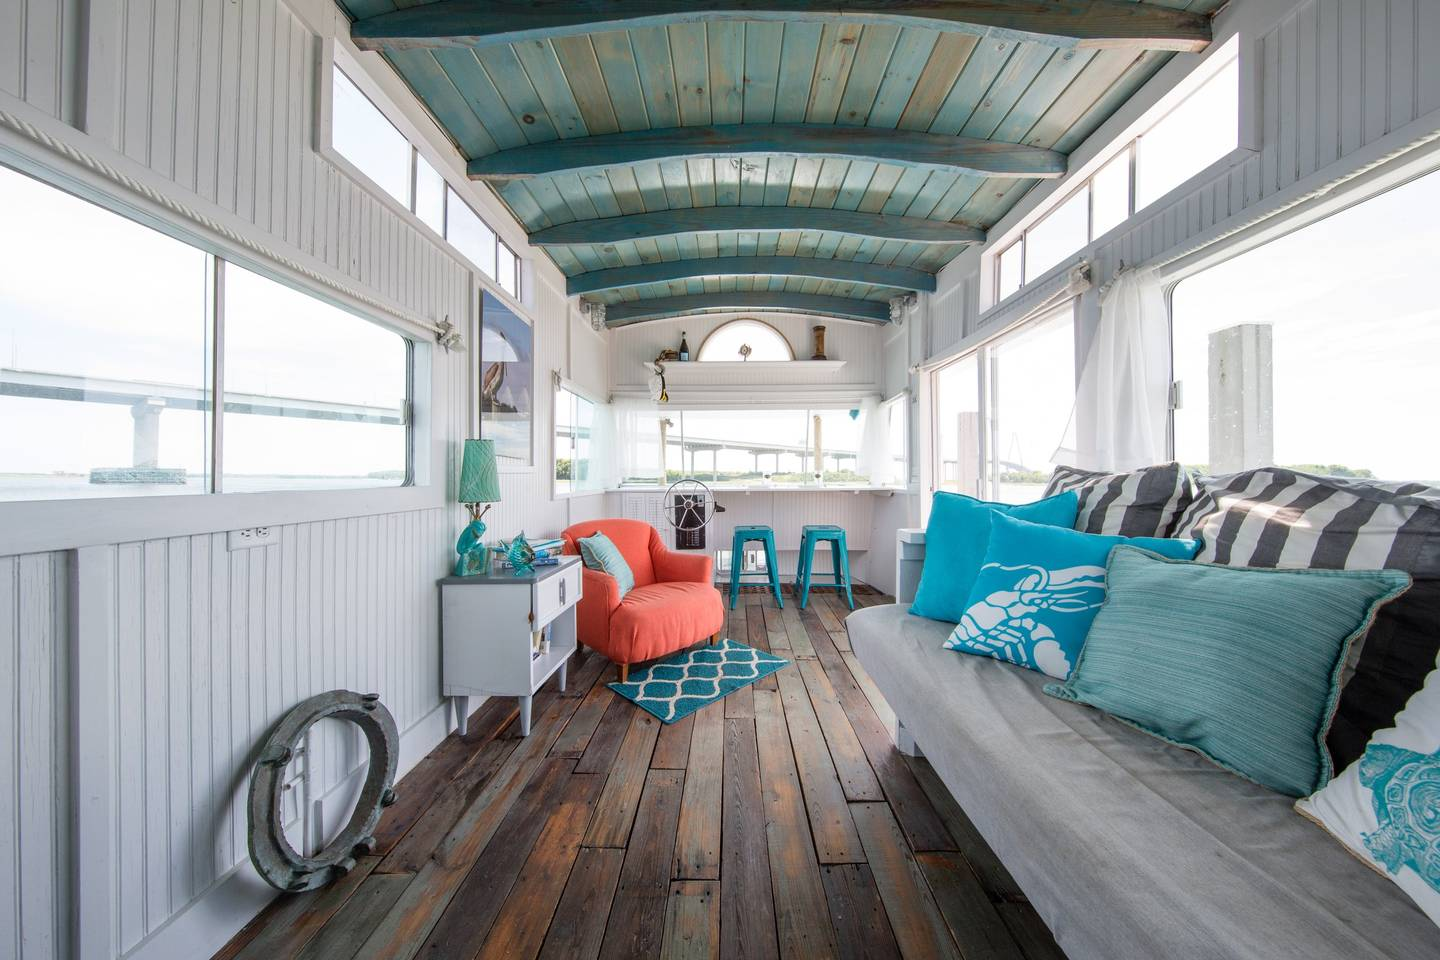 Rent a houseboat in Charleston.